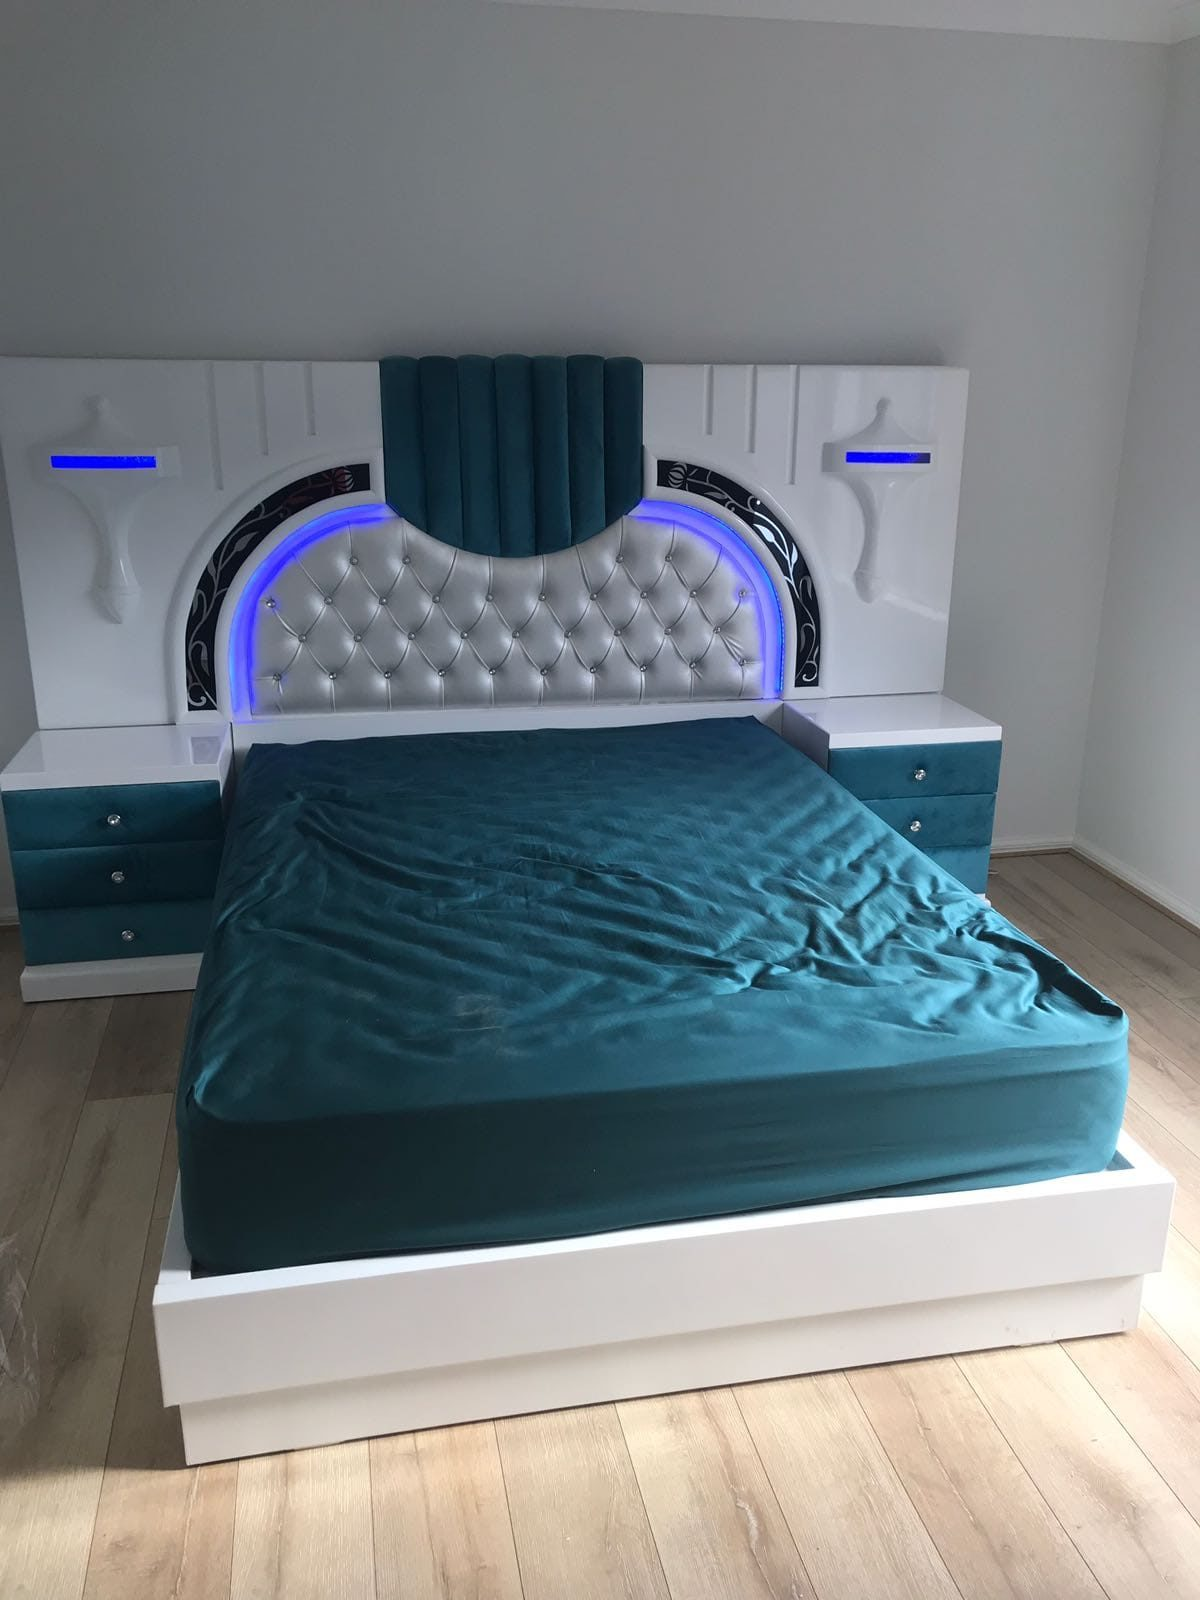 White and Blue Bed with Sides